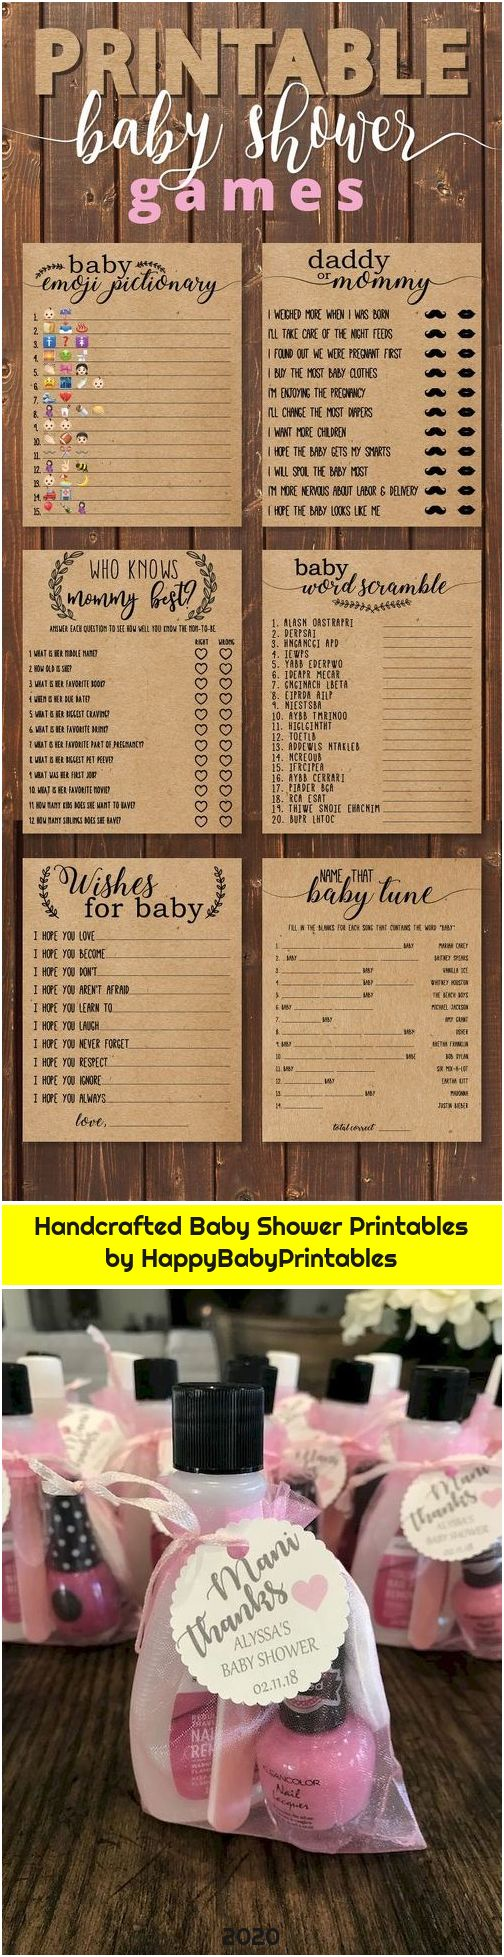 Handcrafted Baby Shower Printables by HappyBabyPrintables